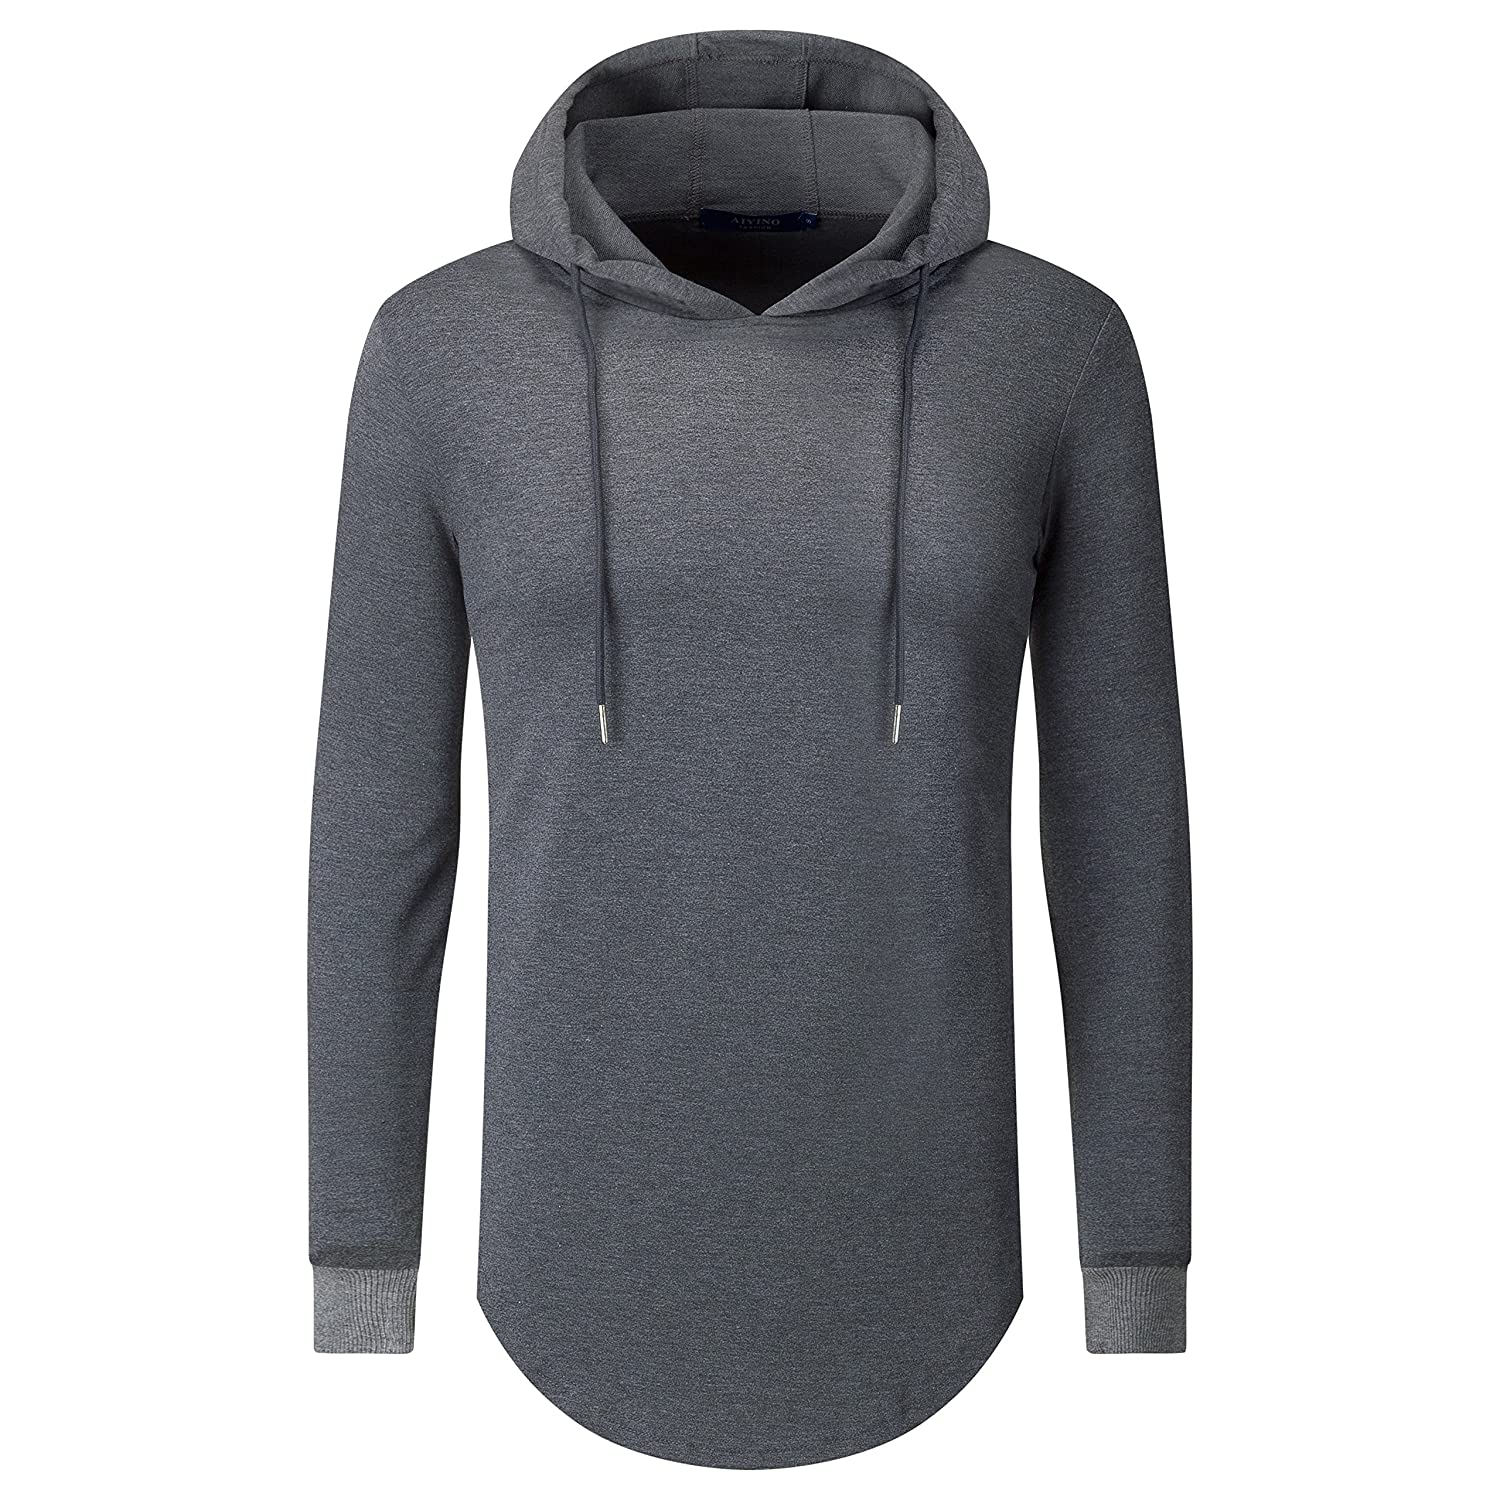 Aiyino Mens Hipster Hip Hop Longline Pullover Long Sleeve Hooded Shirt